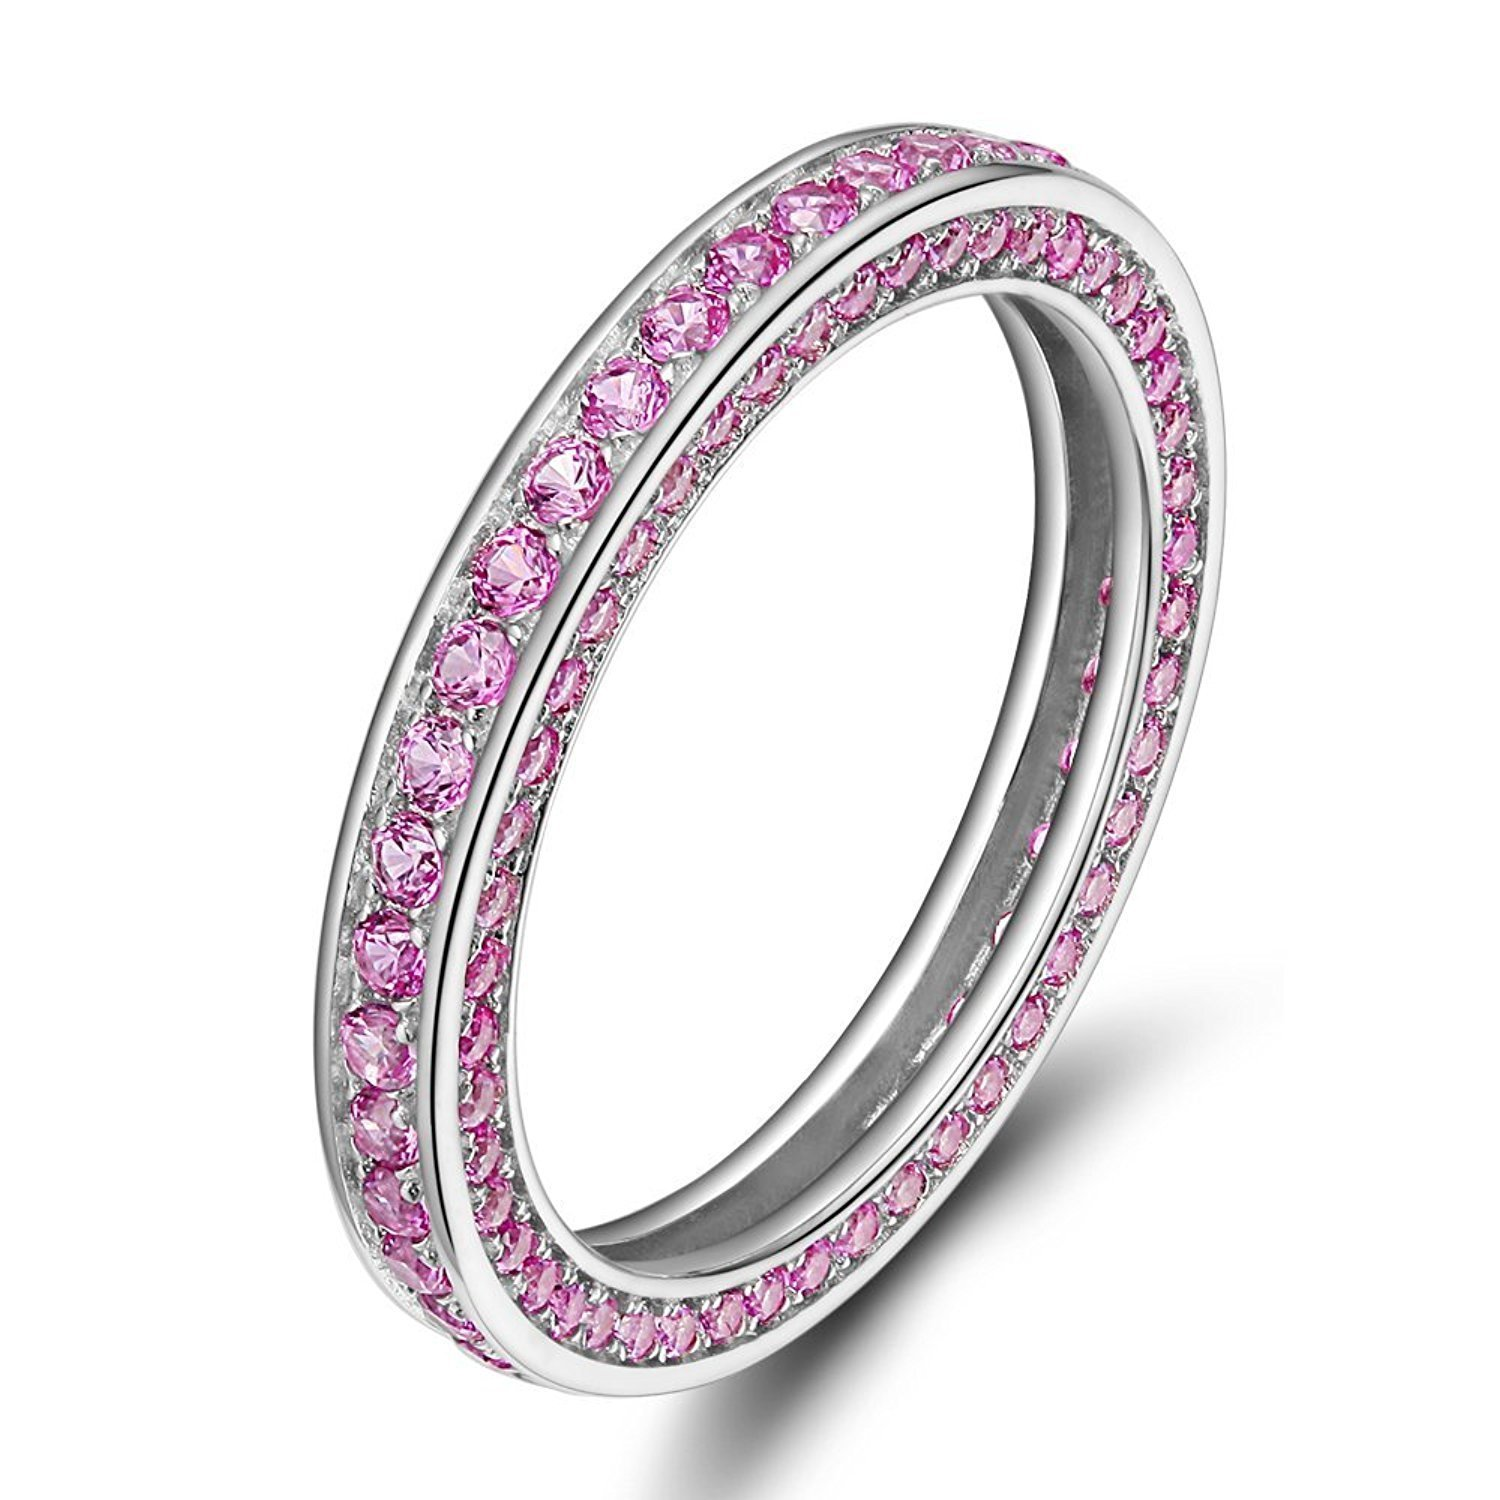 SOMEN TUNGSTEN Womens Sterling Silver Eternity Rings Pink Cubic Zirconia Wedding Engagement Band